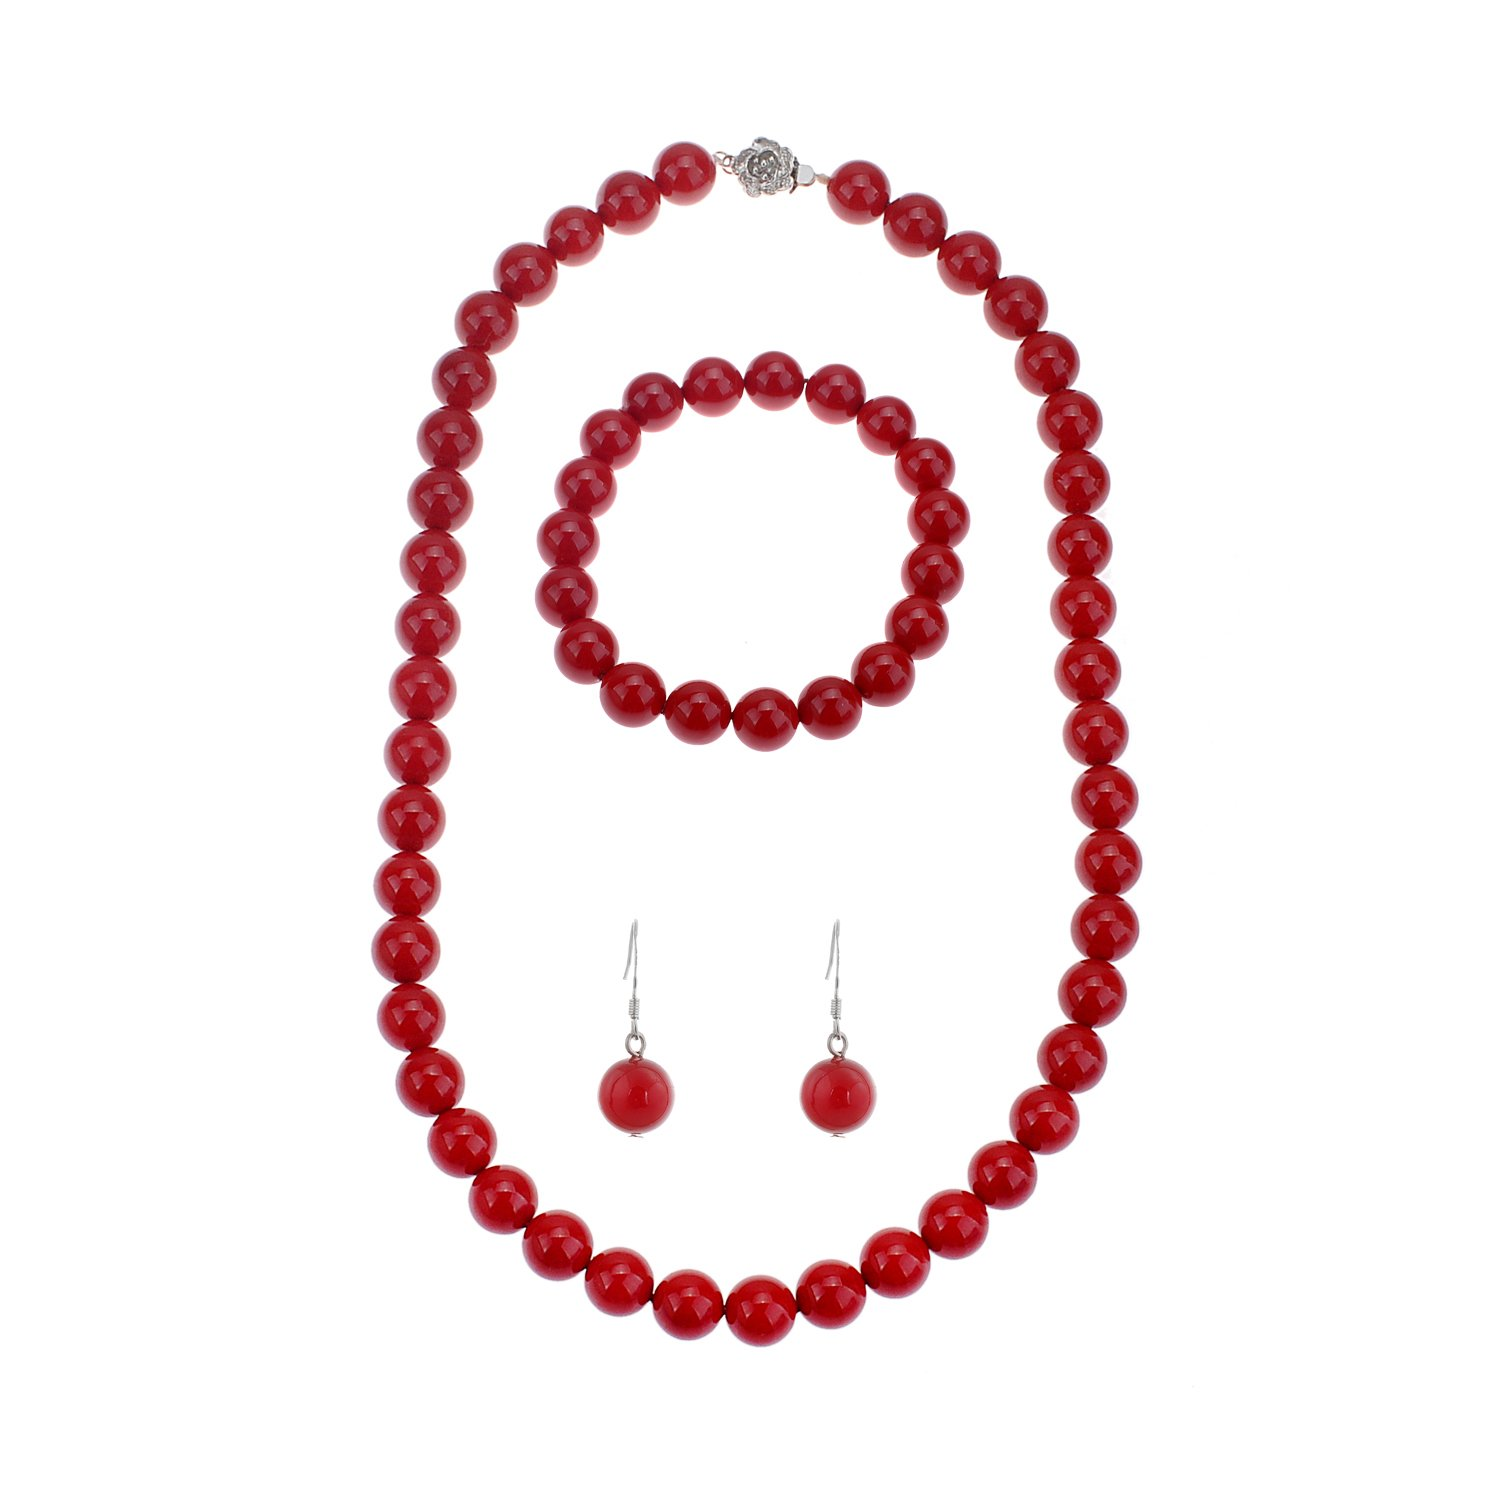 lureme Fashion Style Pearl Elastic Necklace Bracelet Dangle Earring Set-Red(09000649-7)